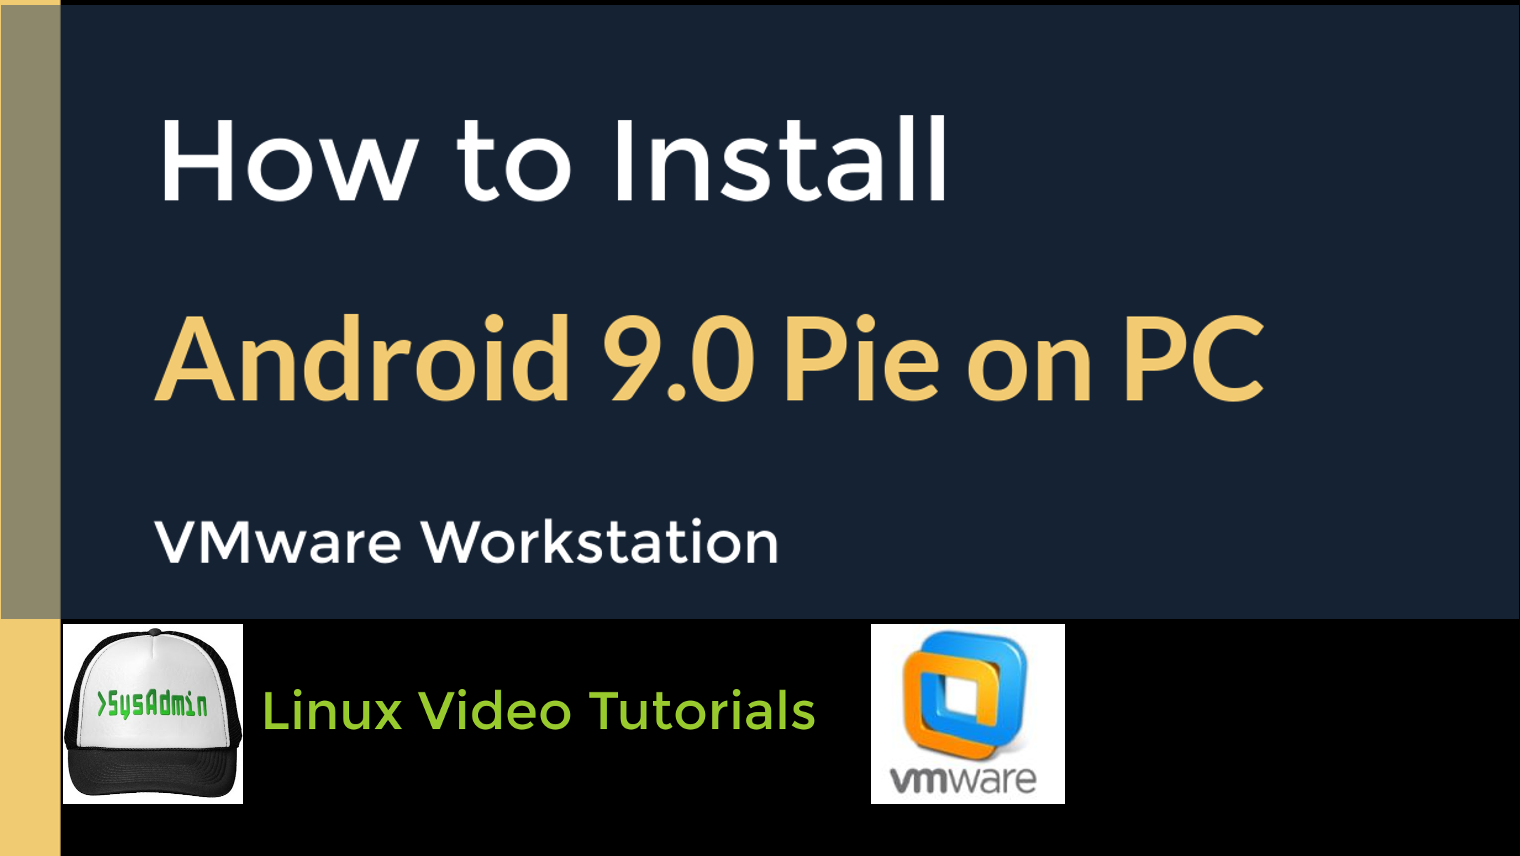 How to Install Android-x112 112.112 R12 (Android 112 Pie on PC) on VMware